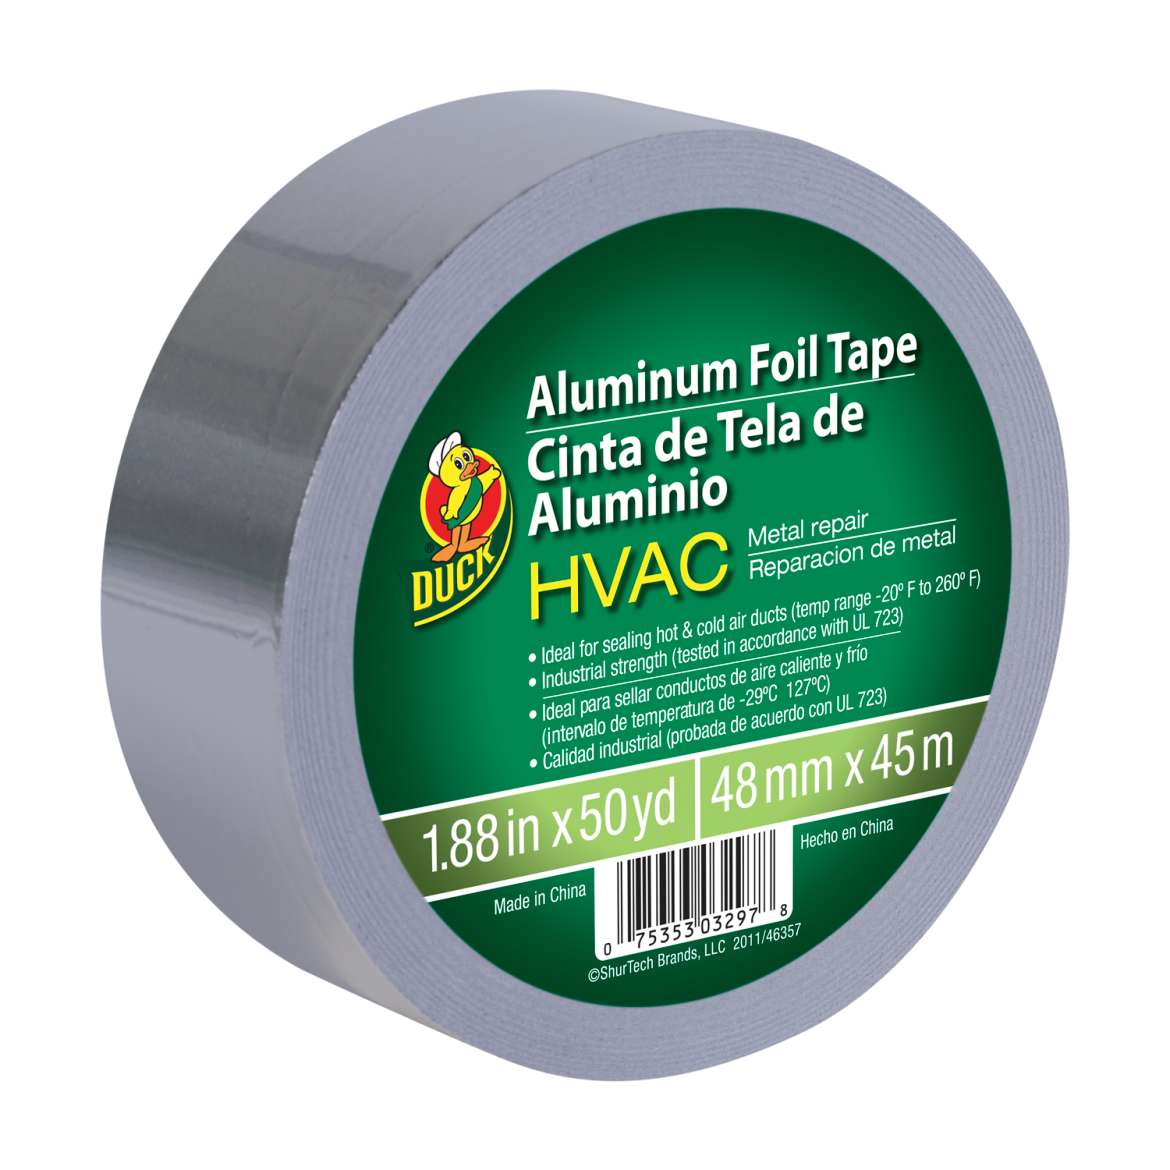 Duck® Brand HVAC Metal Repair Aluminum Foil Tape - Silver, 1.88 in. x 50 yd. Image